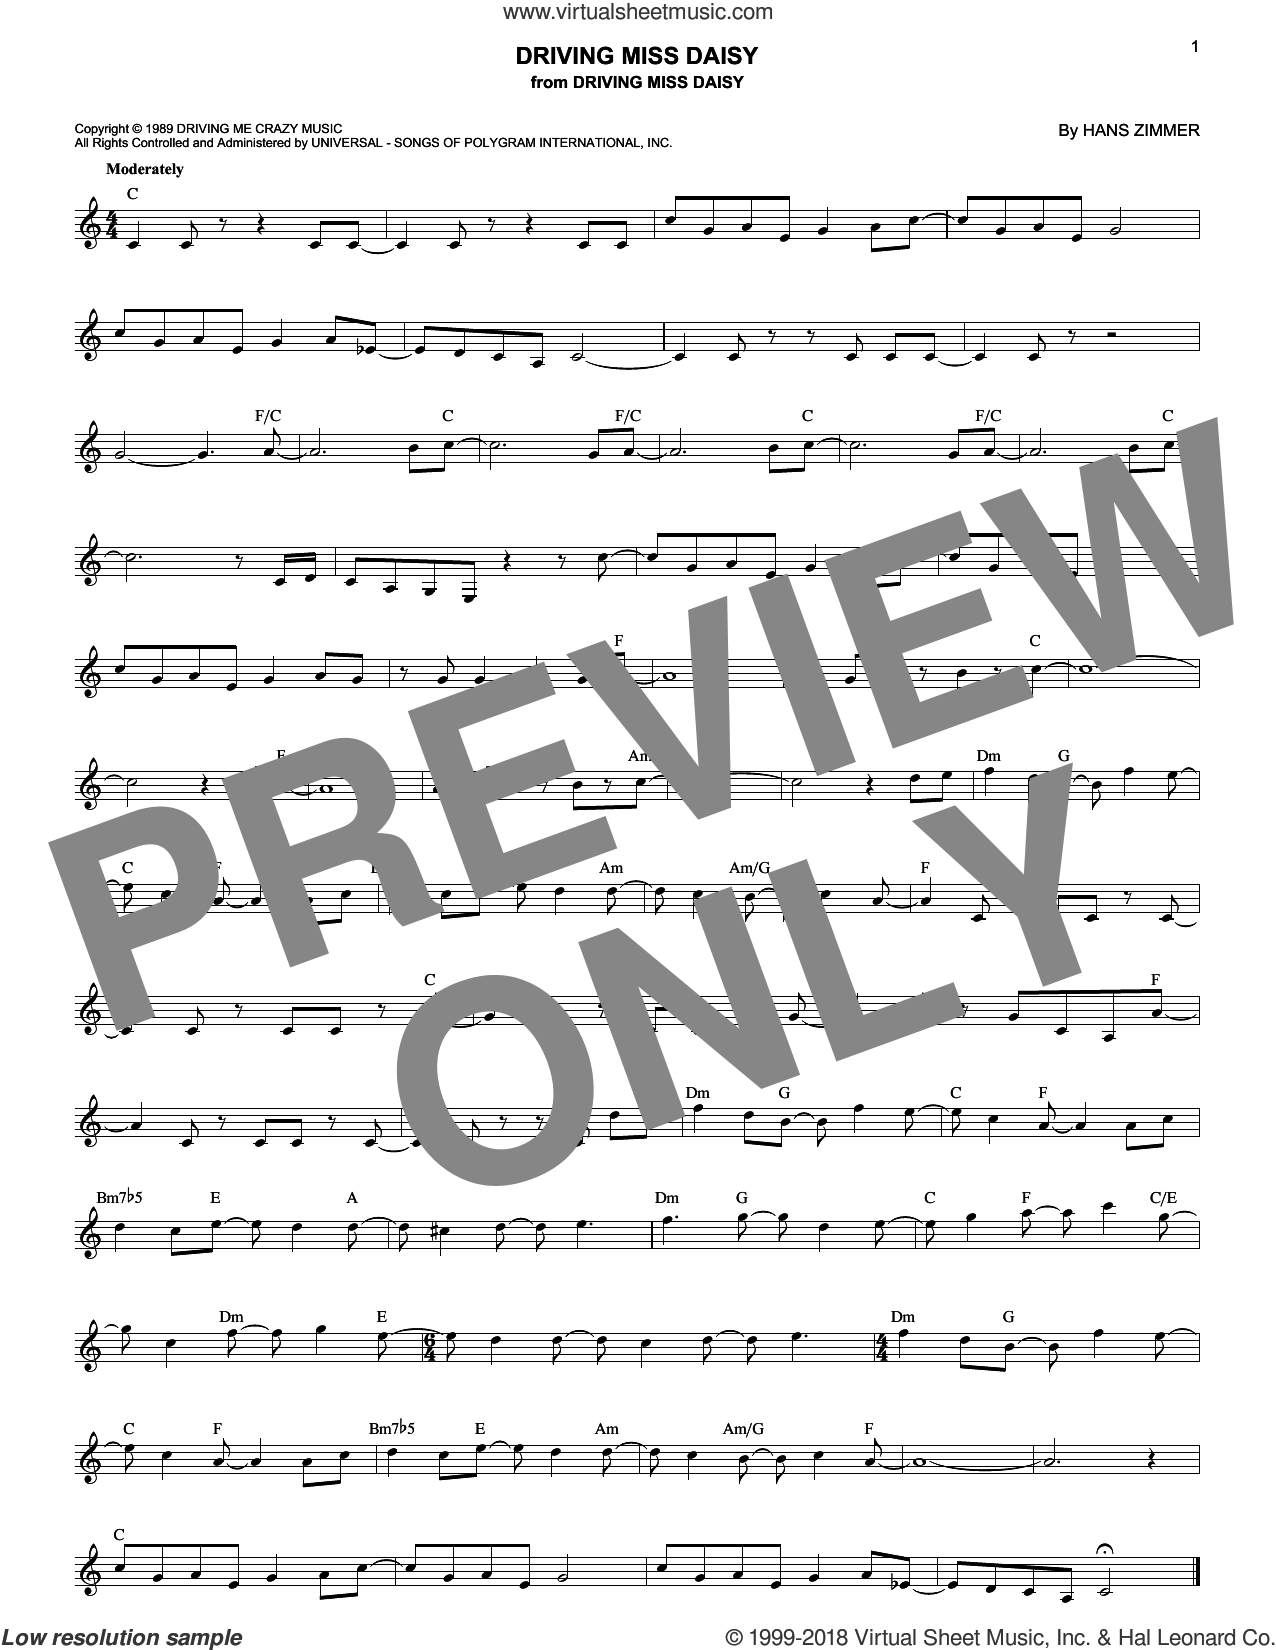 Driving Miss Daisy sheet music for voice and other instruments (fake book) by Hans Zimmer, intermediate skill level